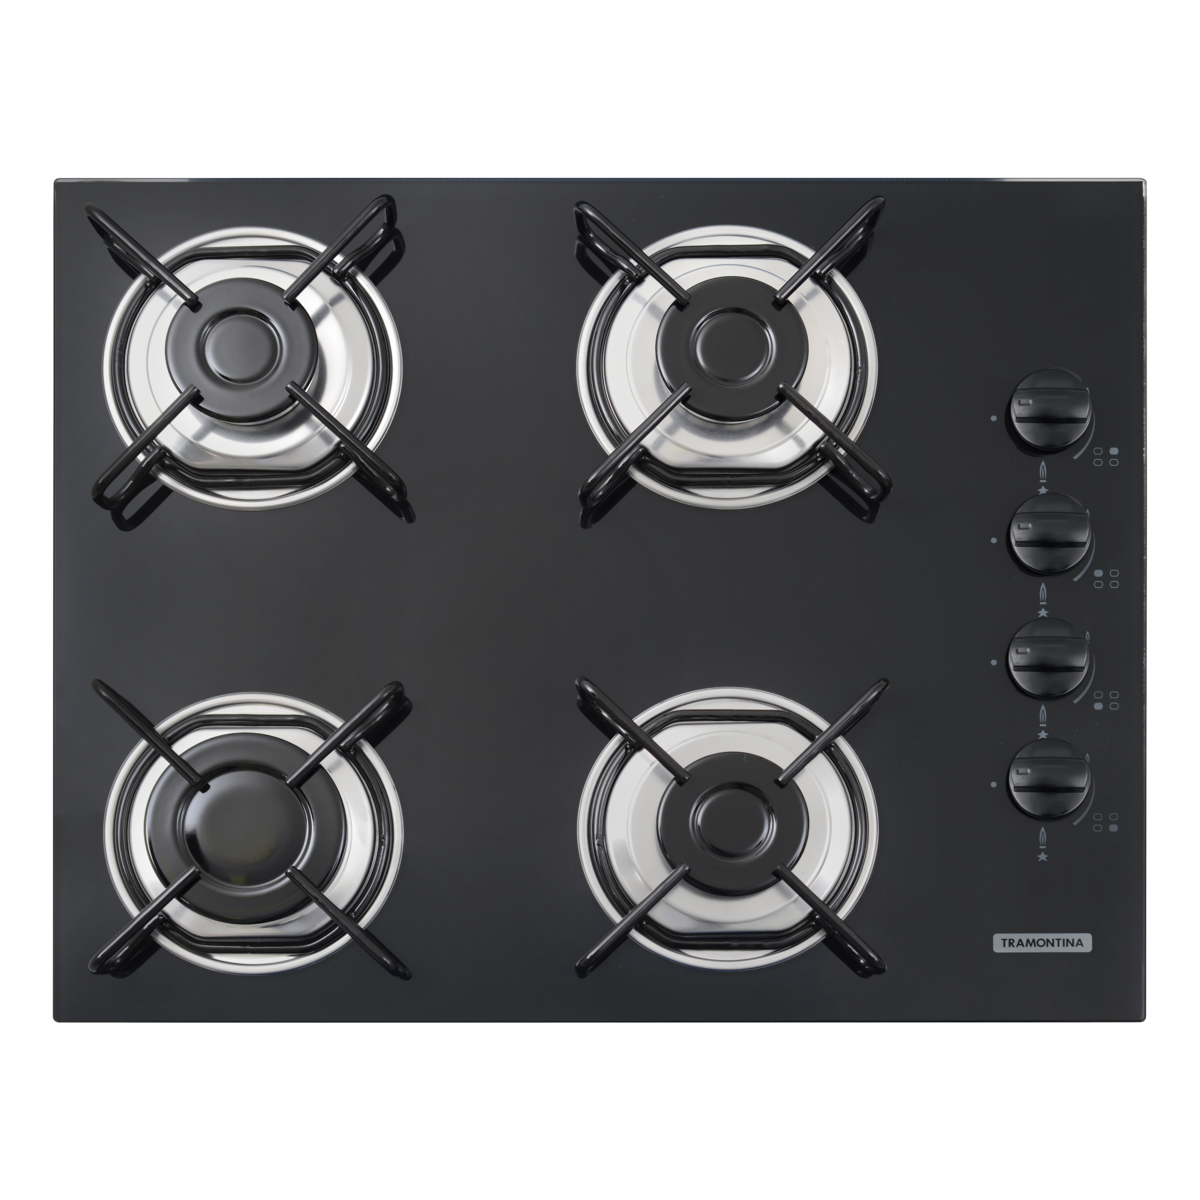 Tramontina Gas Cooktop In Black Tempered Glass With Carbon Steel Trivets Super Automatic Switch On And 4 Burners Tramontina